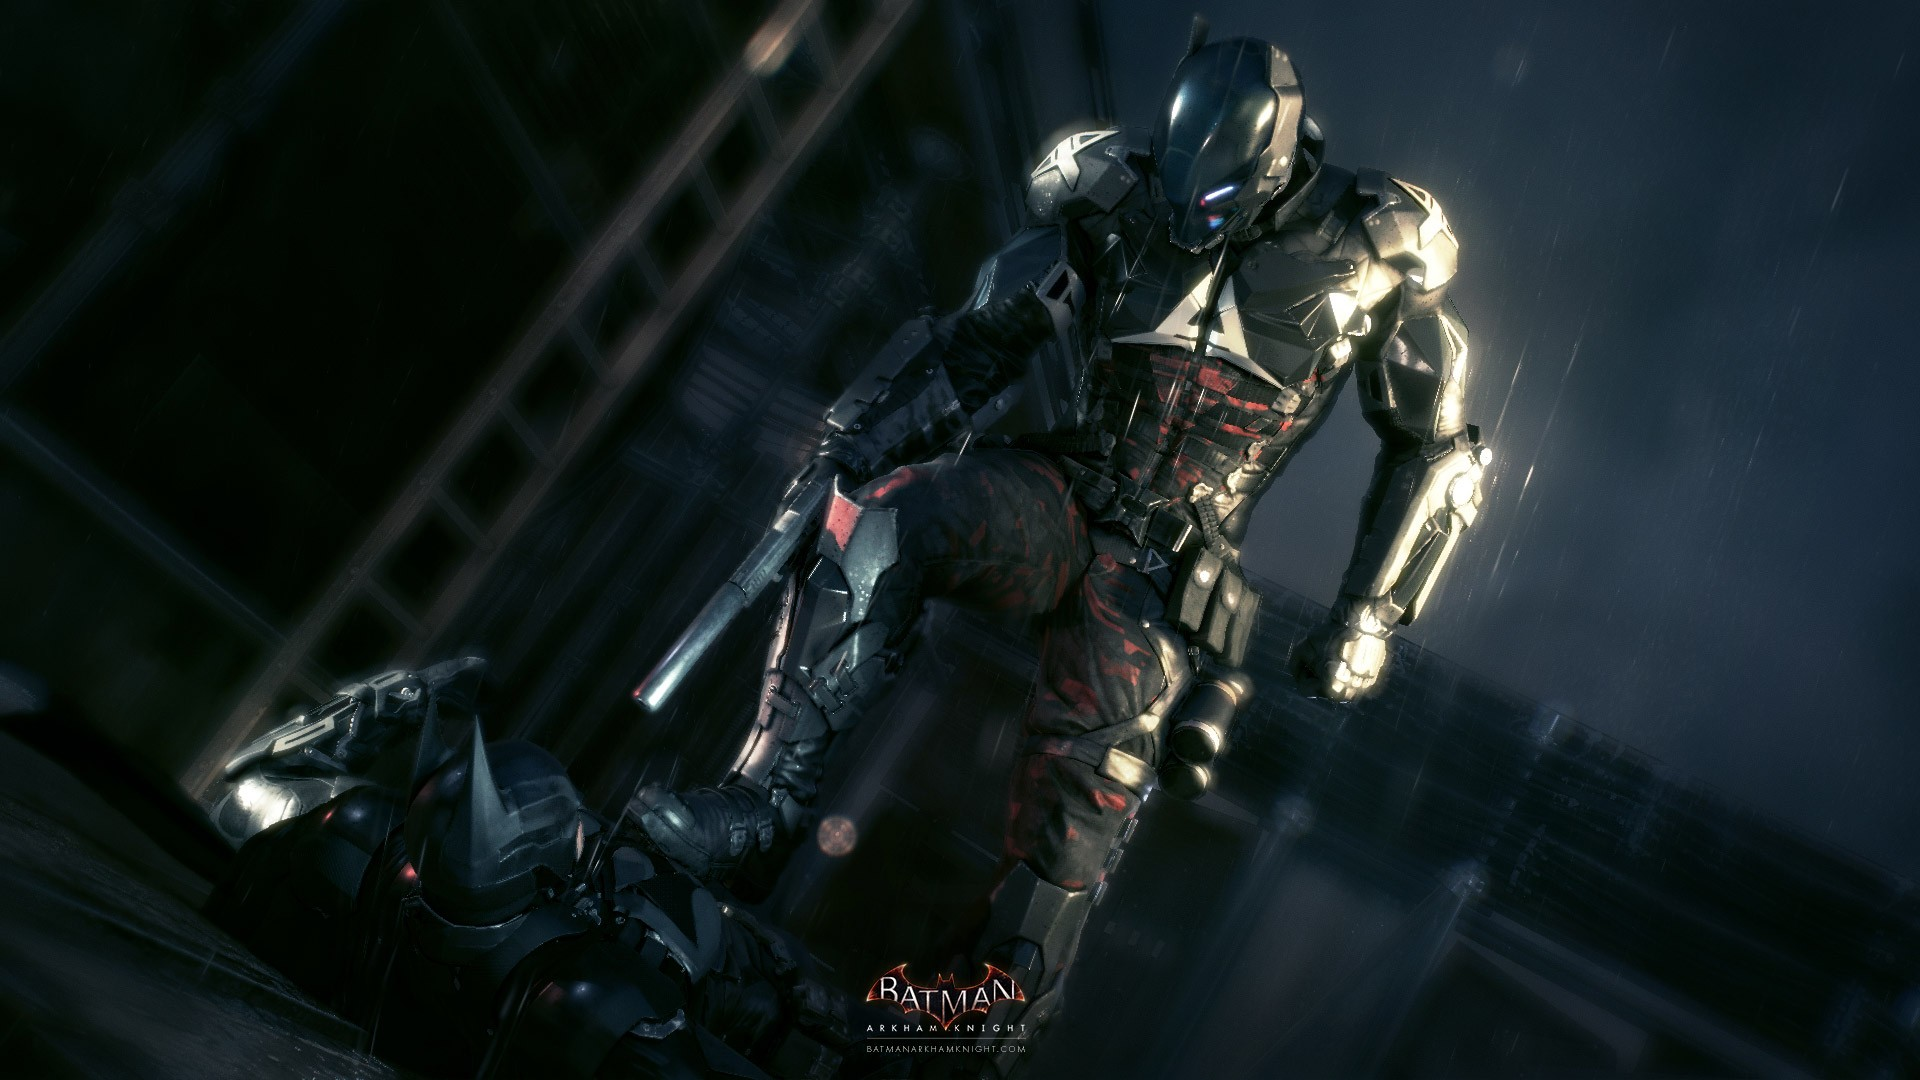 50 Set of Batman Arkham Knight Wallpaper 1920 X 1080 HD 1920x1080